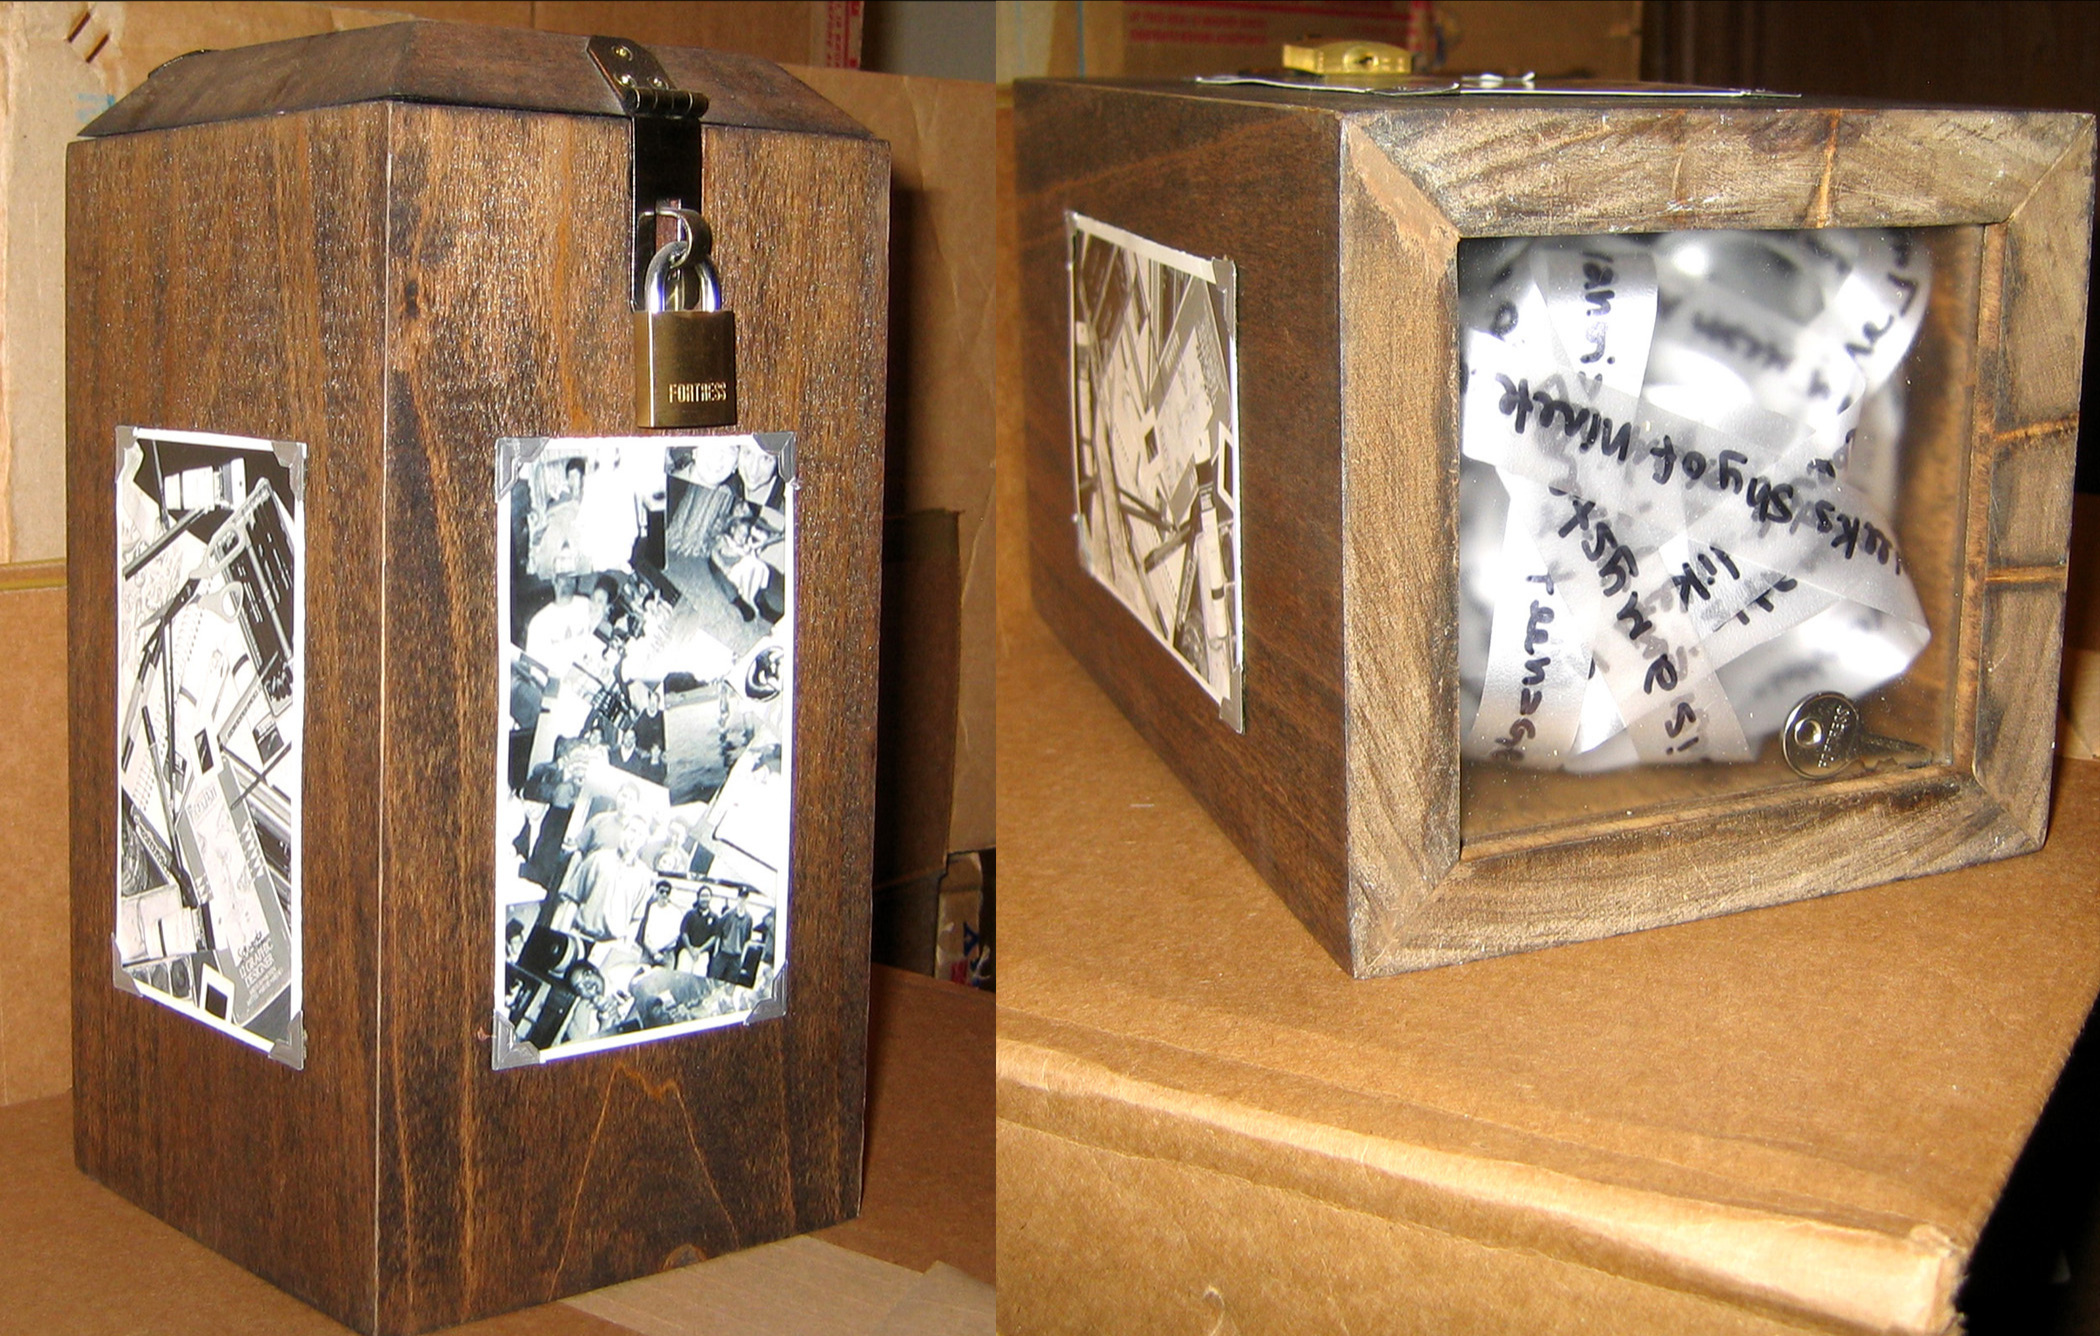 SELF PORTRAIT BOX - 2003Mixed Media - Pine, Plexiglass, Ribbon, Sharpie, Metal Hinges/Lock, PhotosNFS